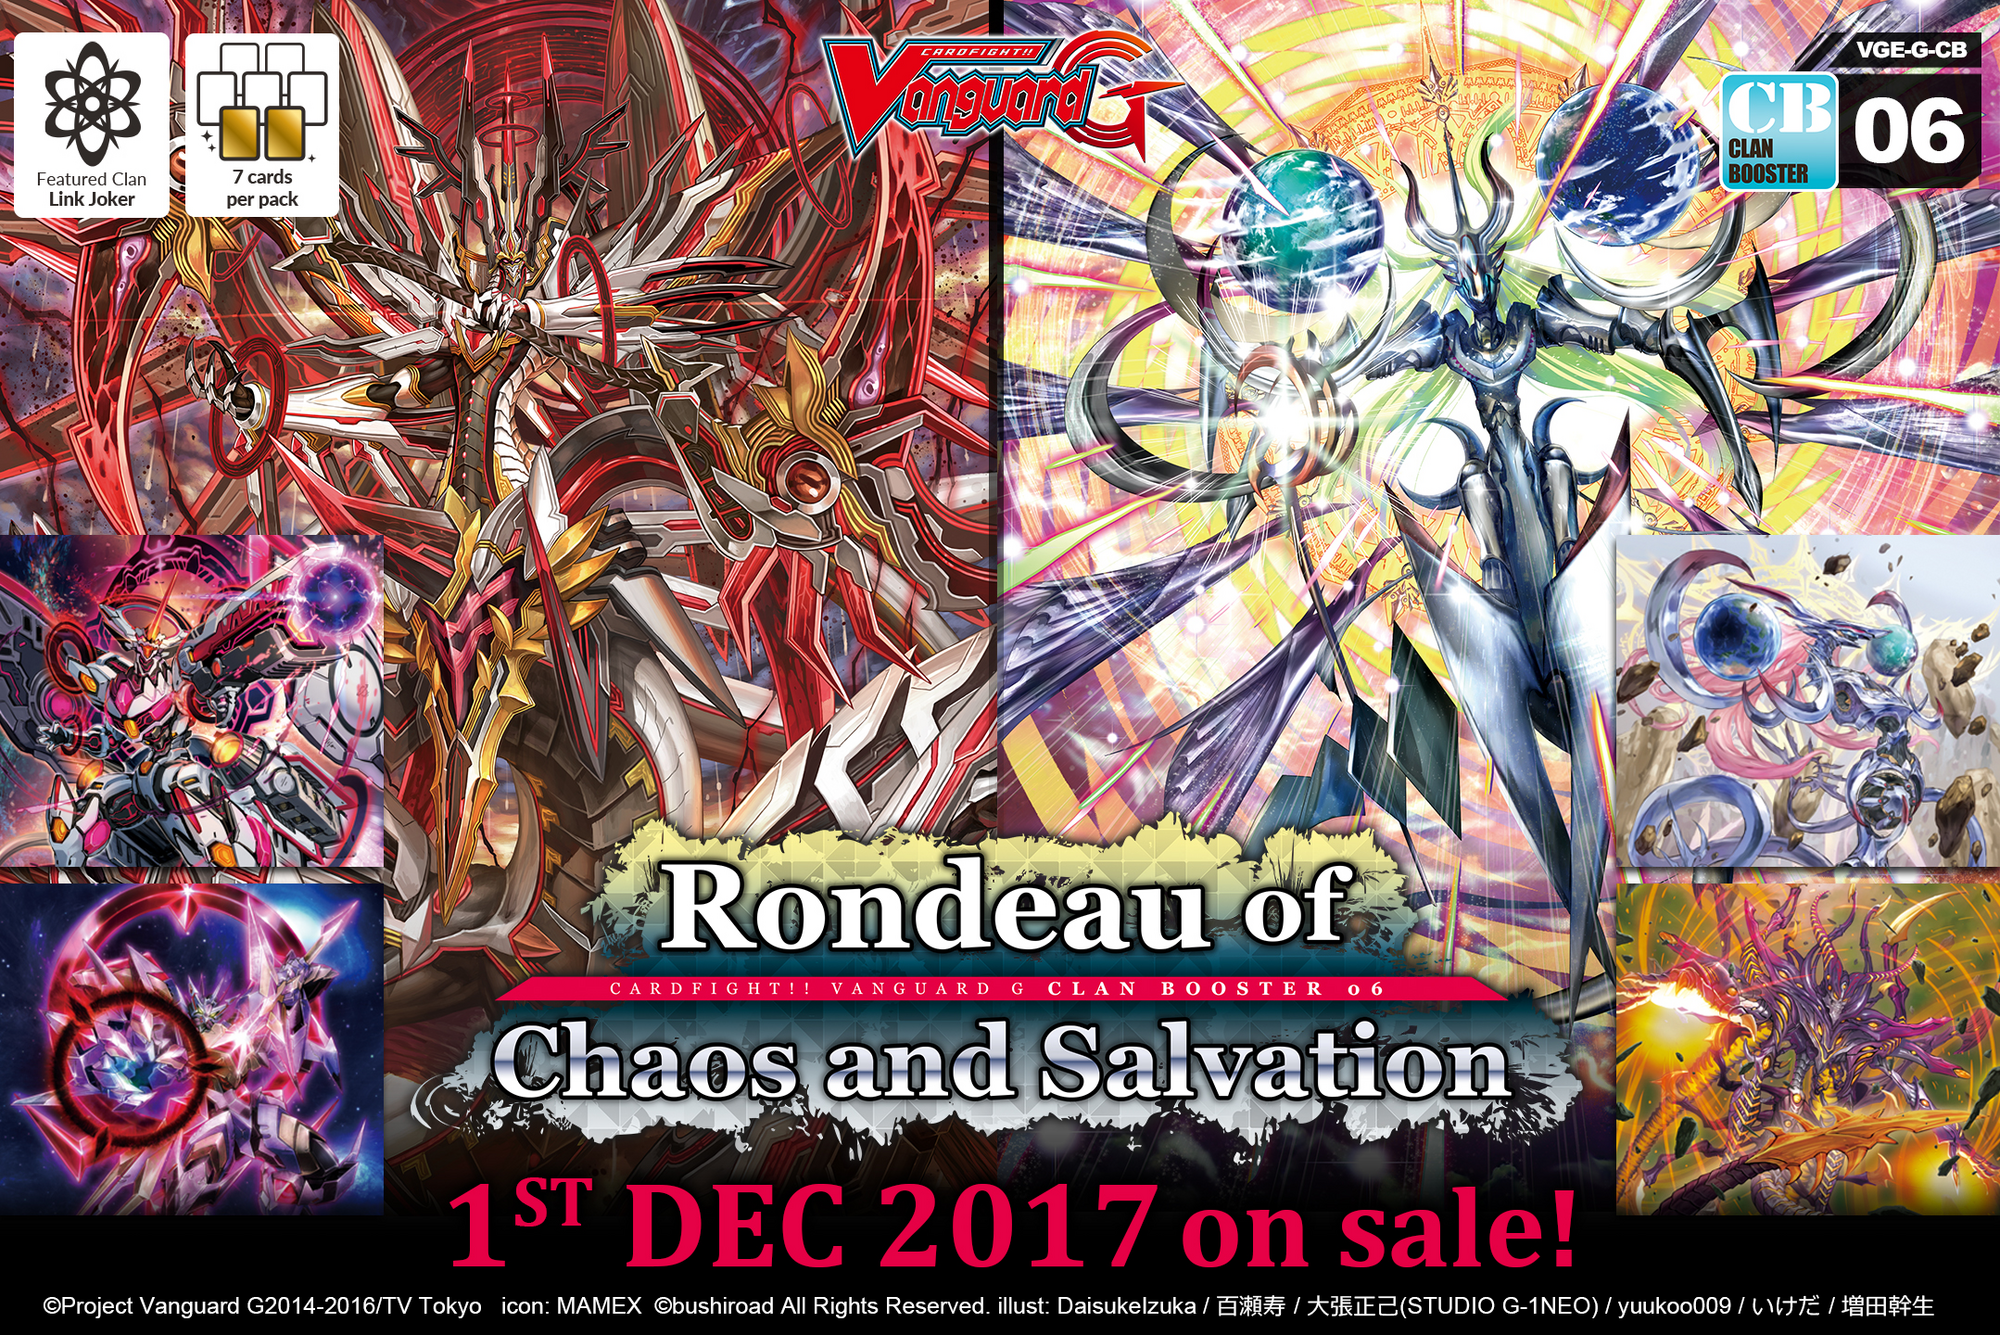 G Clan Booster 6: Rondeau of Chaos & Salvation | Cardfight